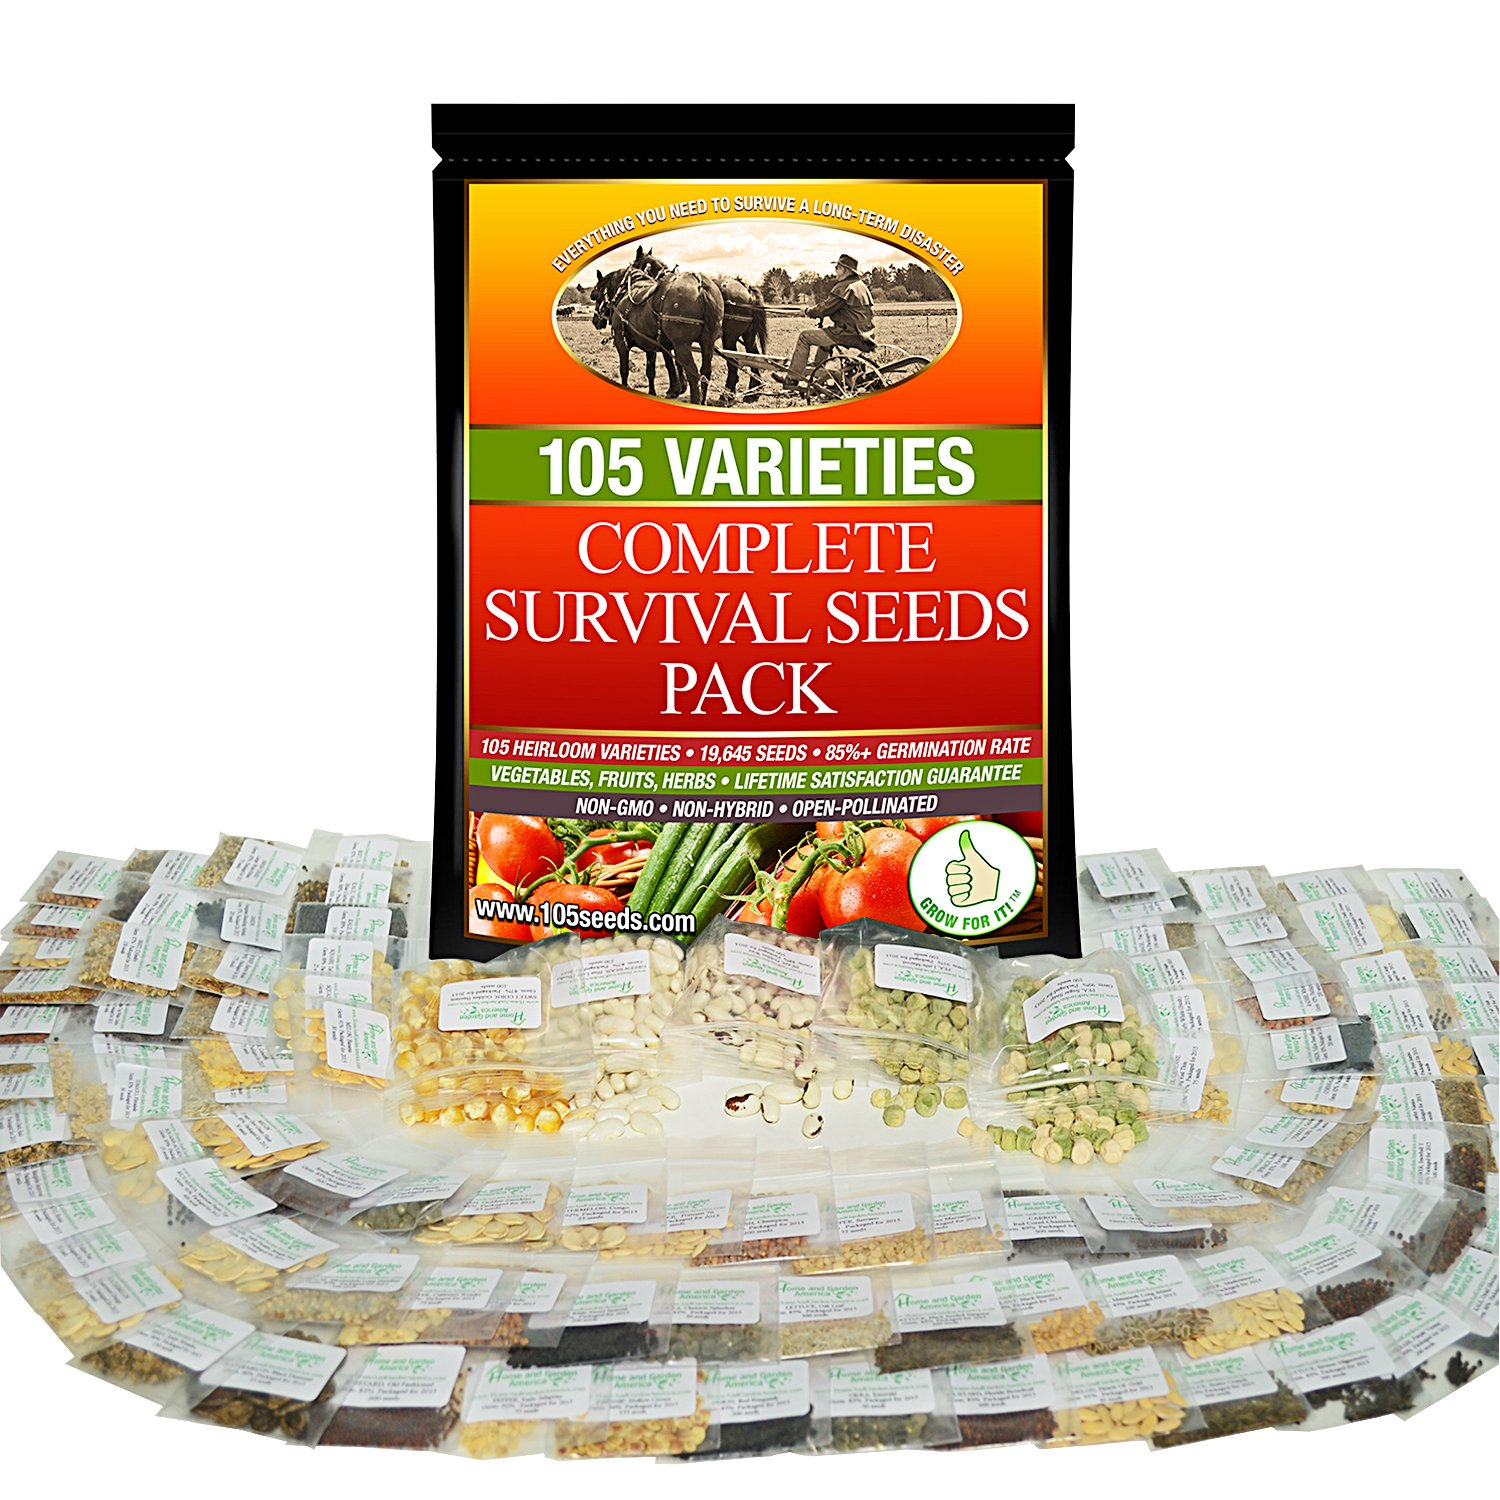 Non-GMO Heirloom Vegetable Seeds Survival Garden - 105 Varieties Cover All Hardiness Zones - Emergency Doomsday Supplies - Made In USA by Grow For It by Grow For It